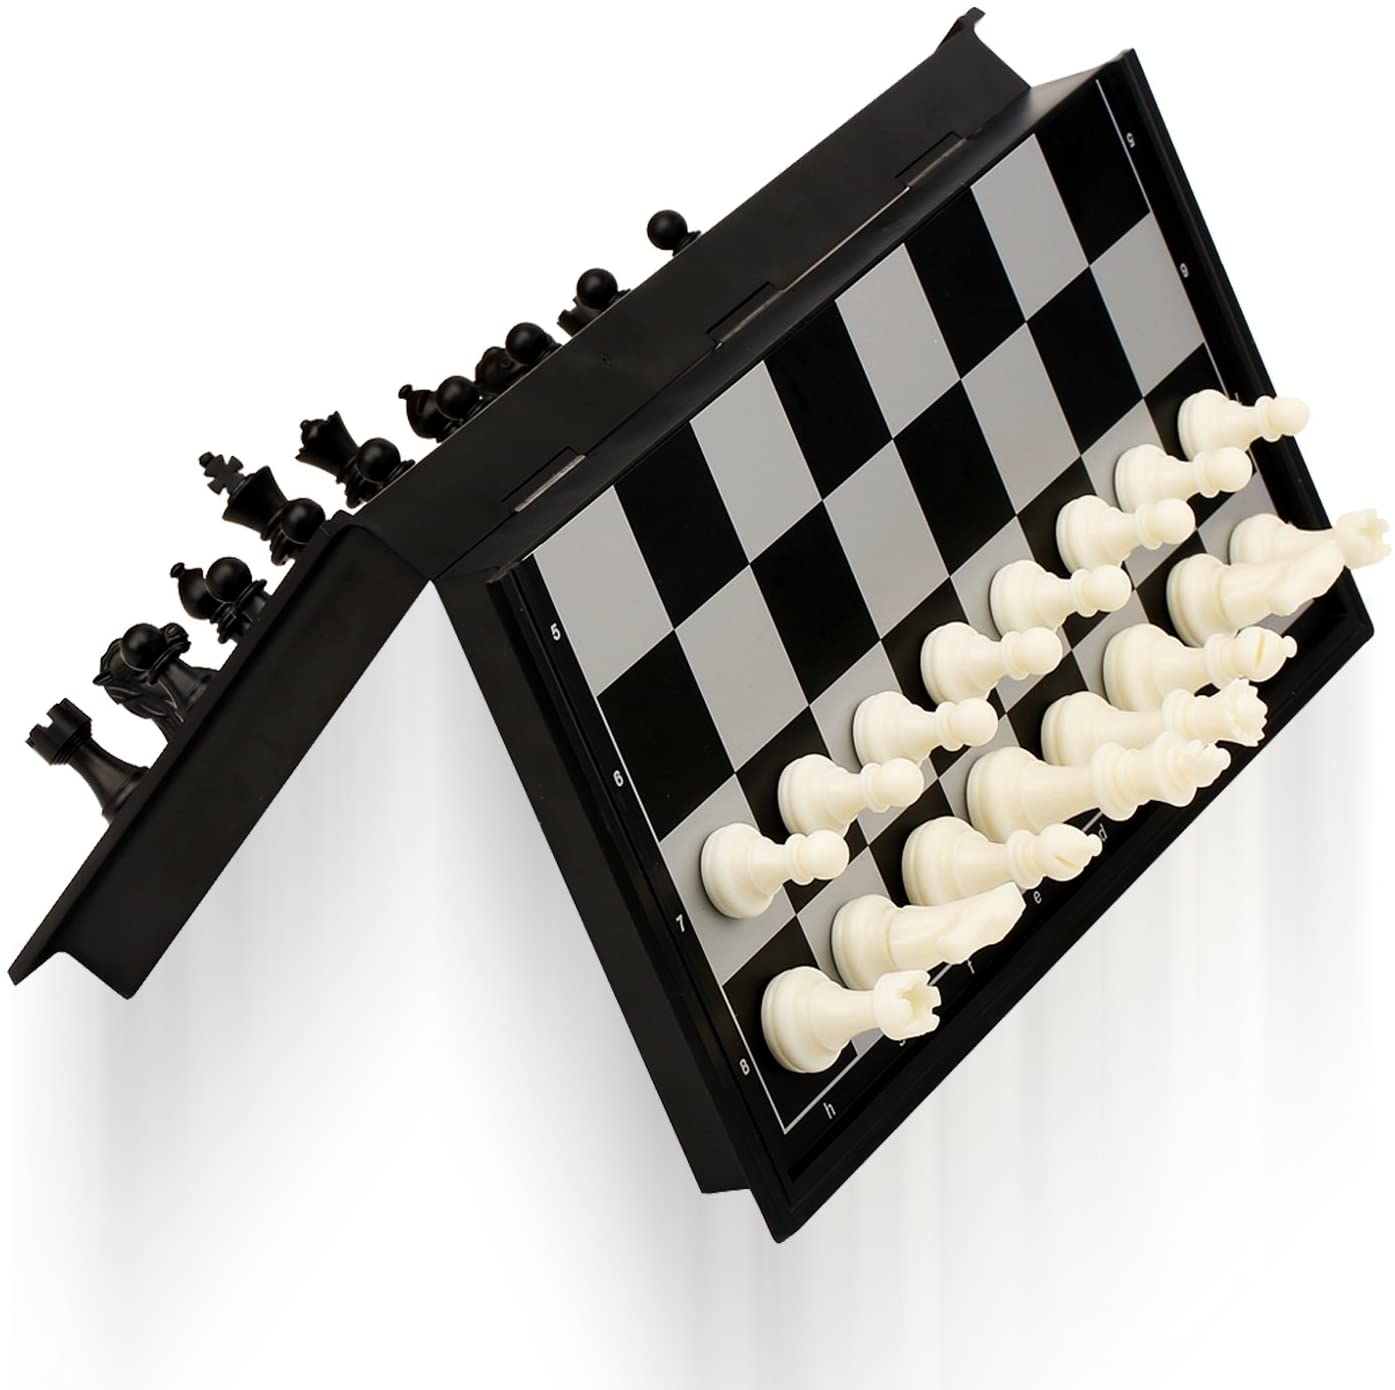 Magnetic Travel Chess Set With Folding Chess Board Only $10.92 (Was $21.99)